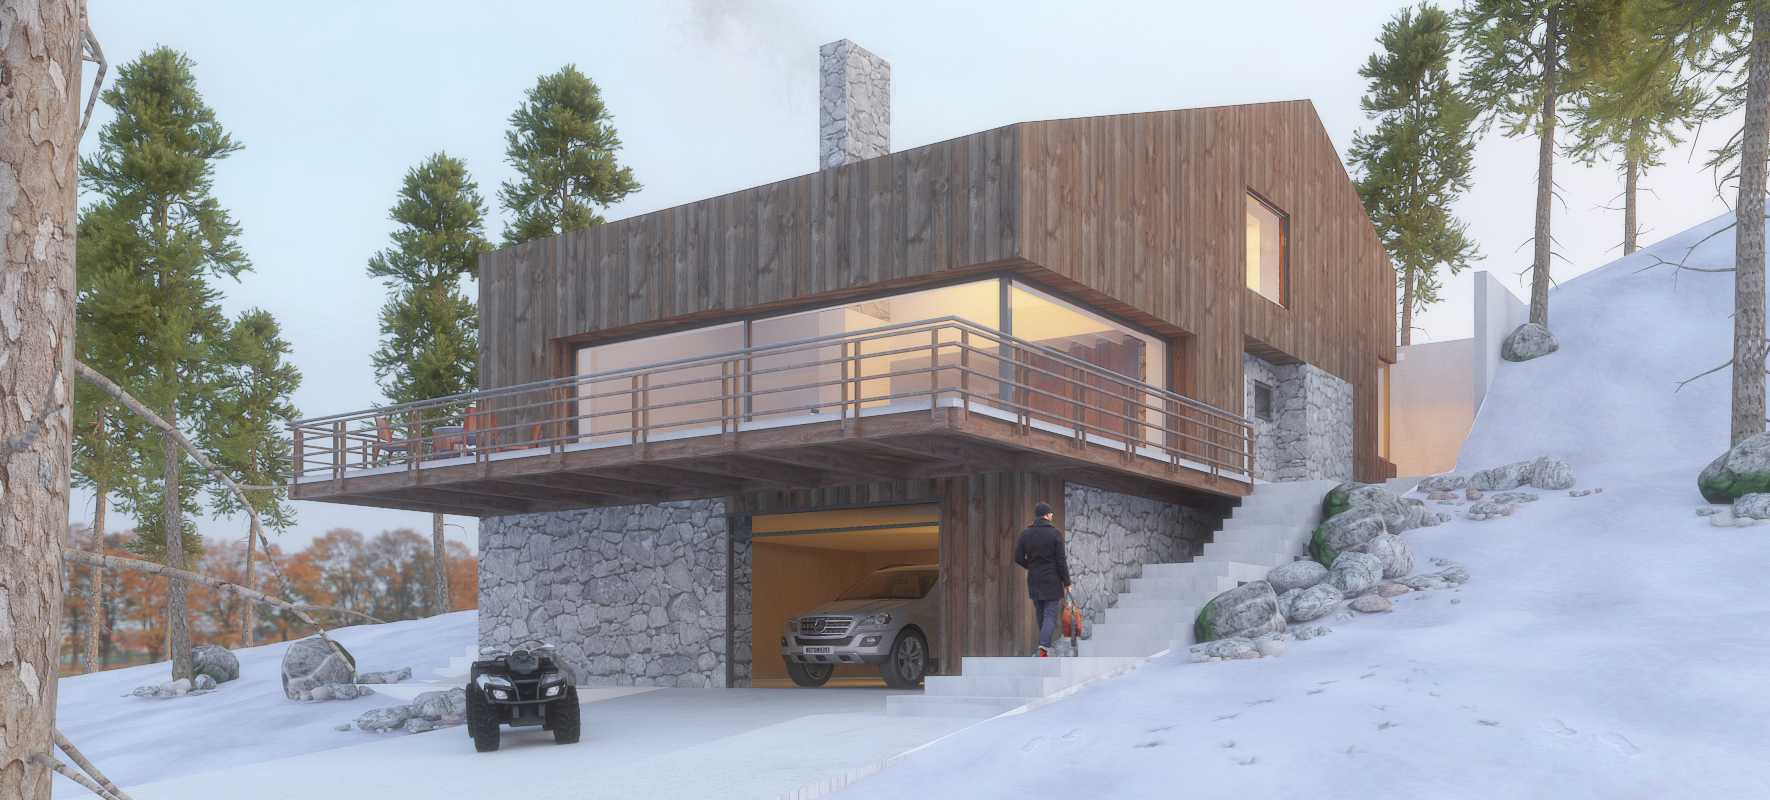 vila in brezovica - Year: 2018Location: Brezovica, KosovoClient: Private investor  Main features: • Natural materials• Design as an inclusive processstarting from theuser perspective.